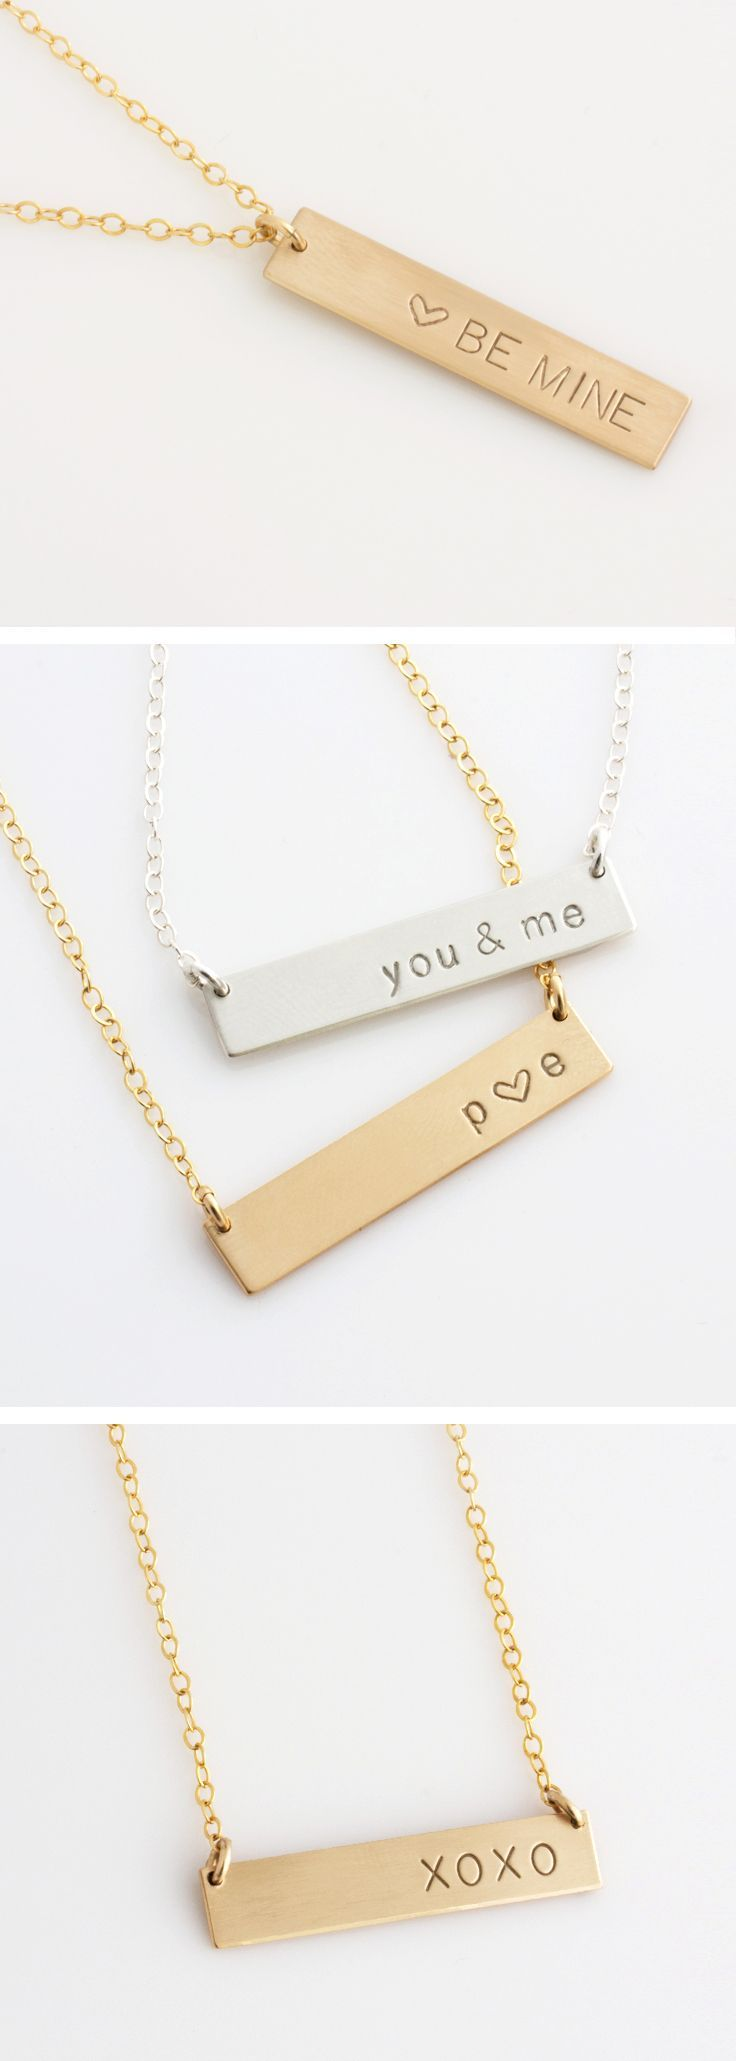 personalized bar necklace by LEILA Jewelry